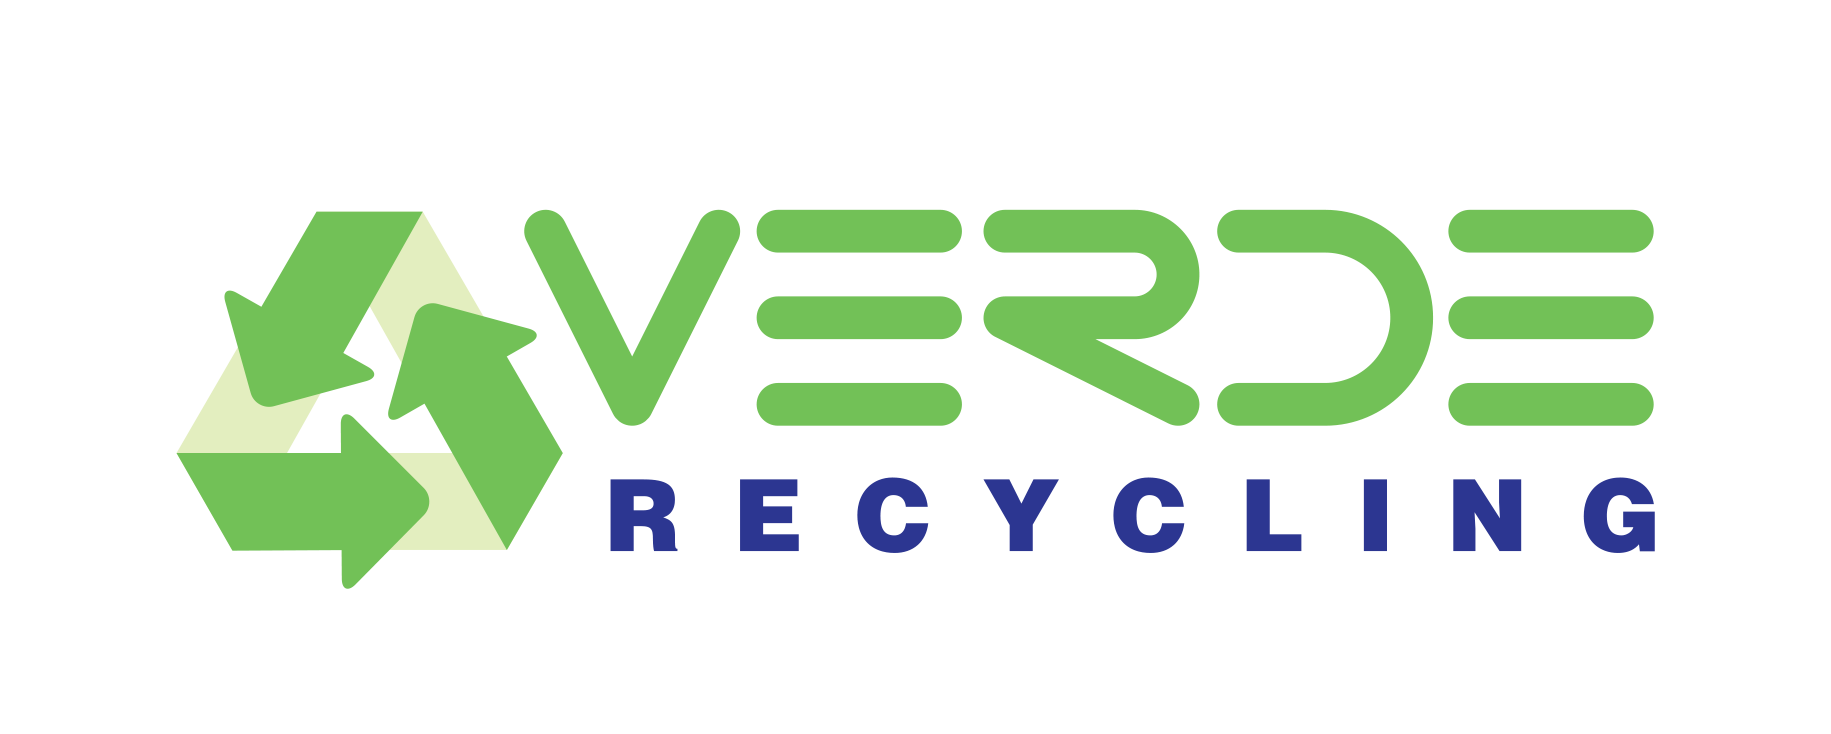 VERDE business logo